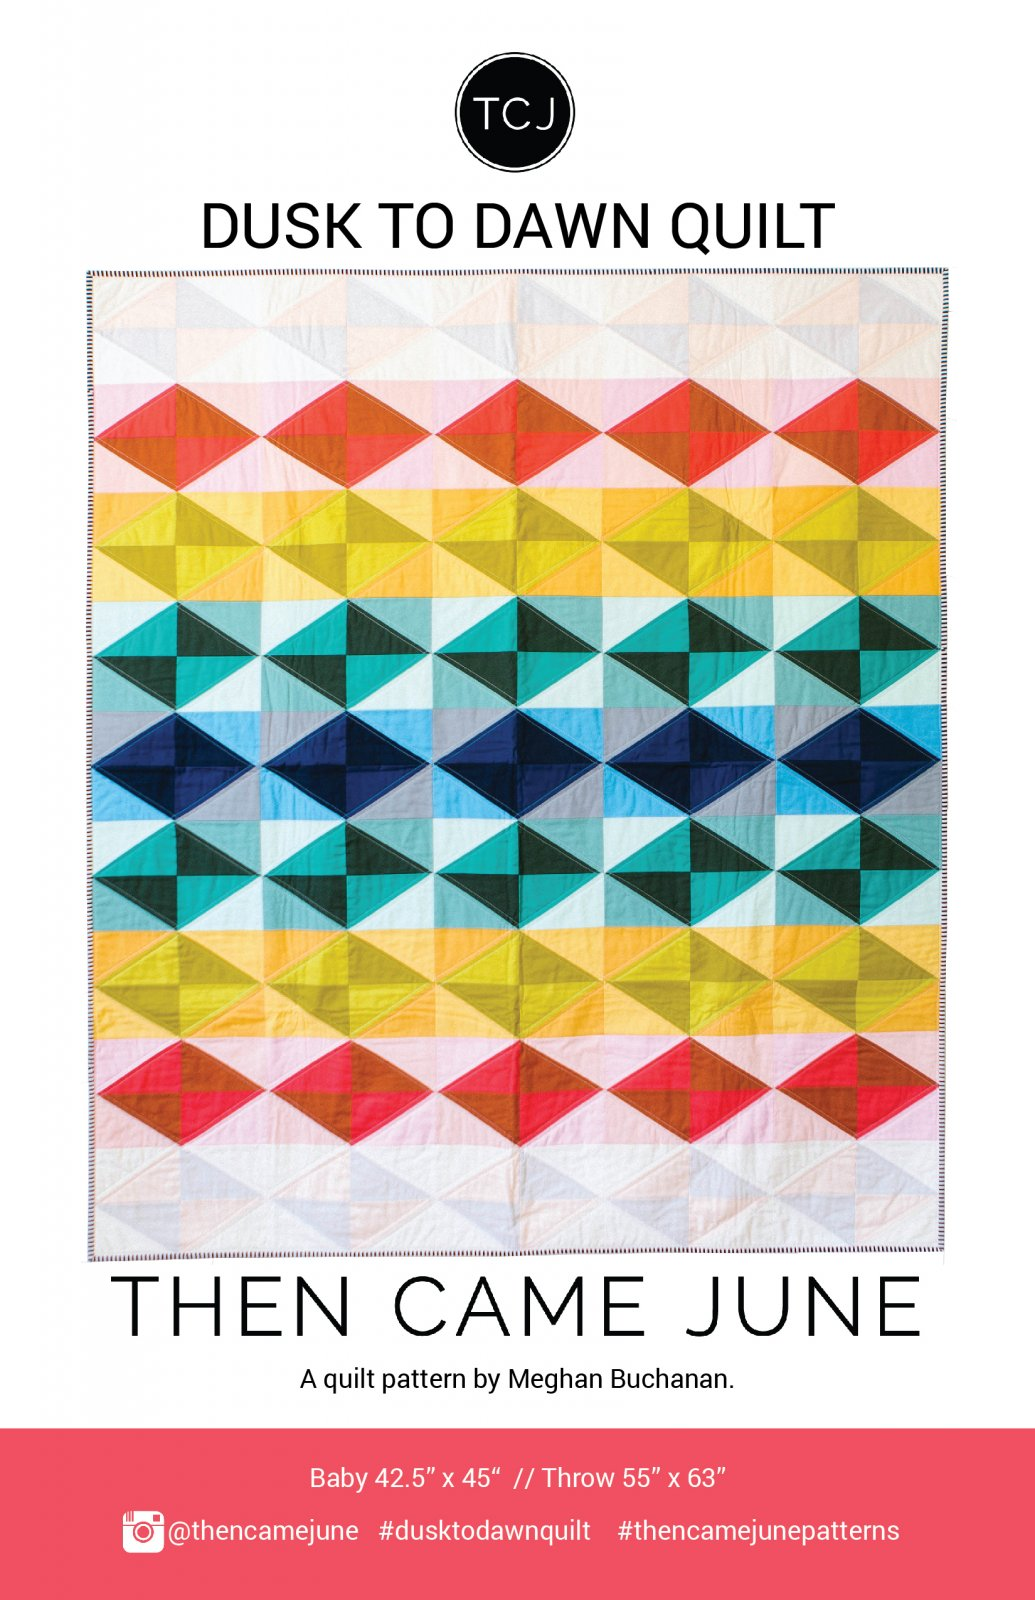 Dusk to Dawn Quilt by Then Came June